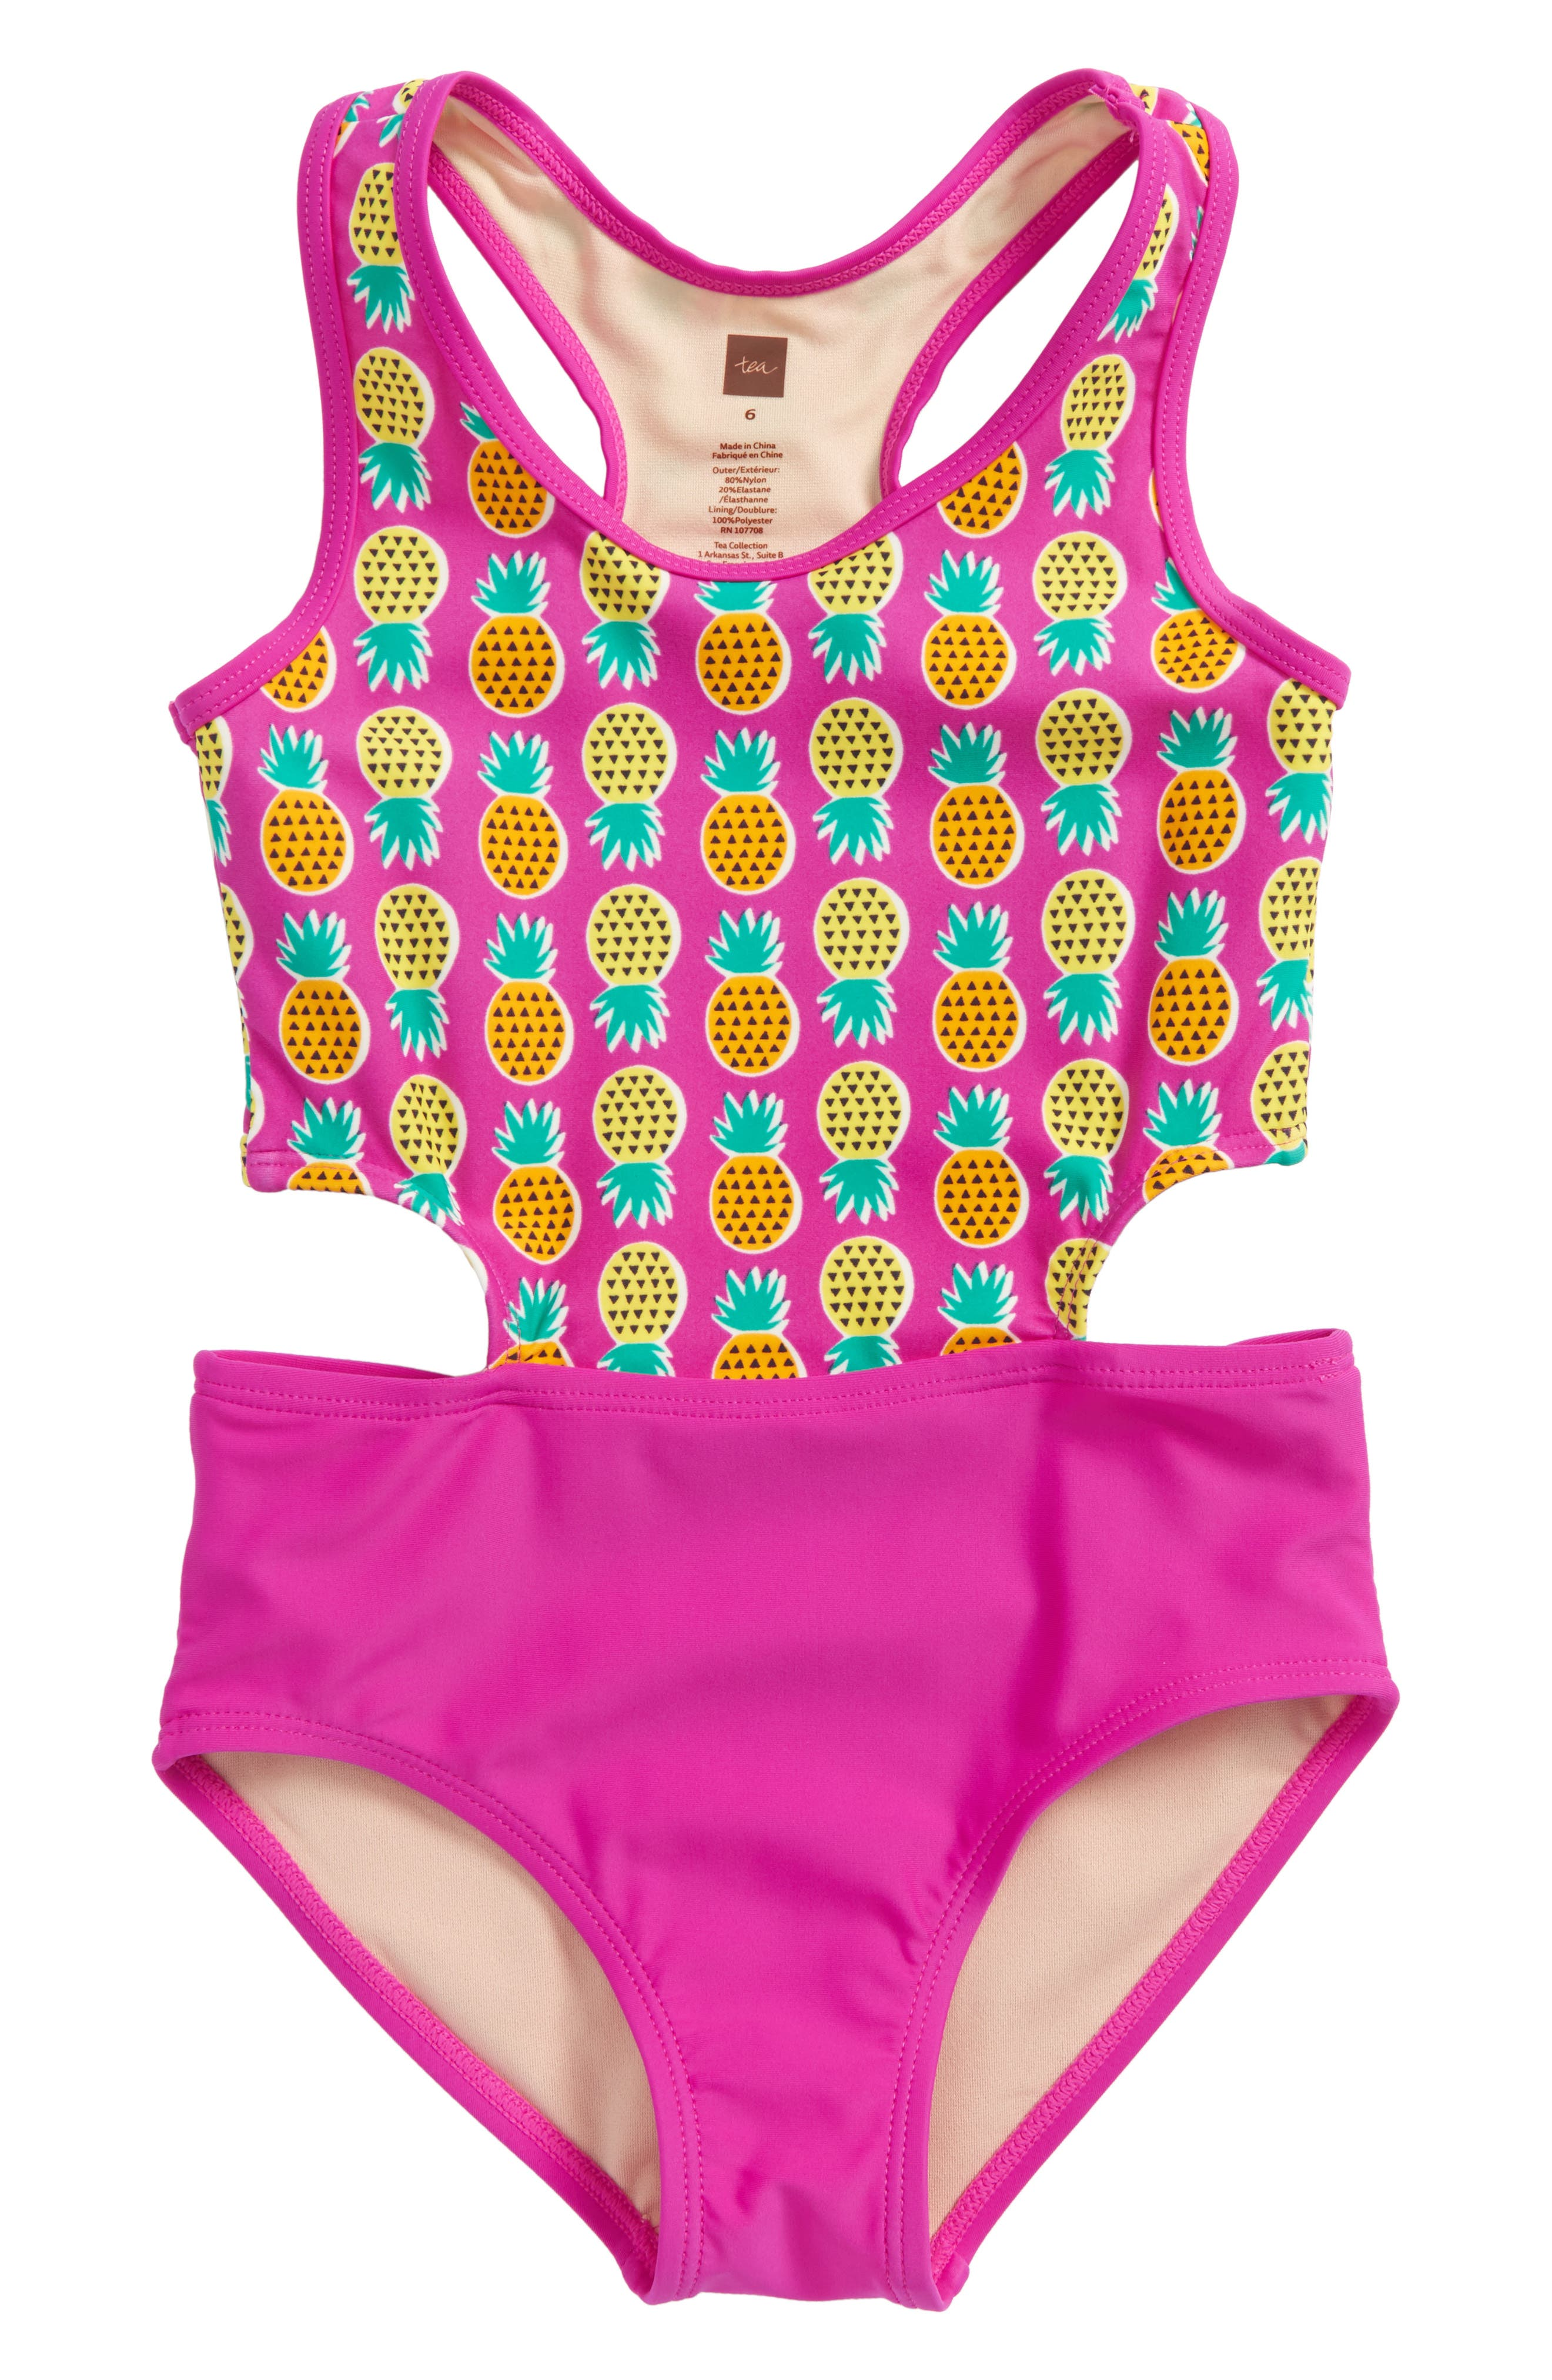 Tea Collection Cutout One-Piece Swimsuit (Toddler Girls, Little Girls & Big Girls)